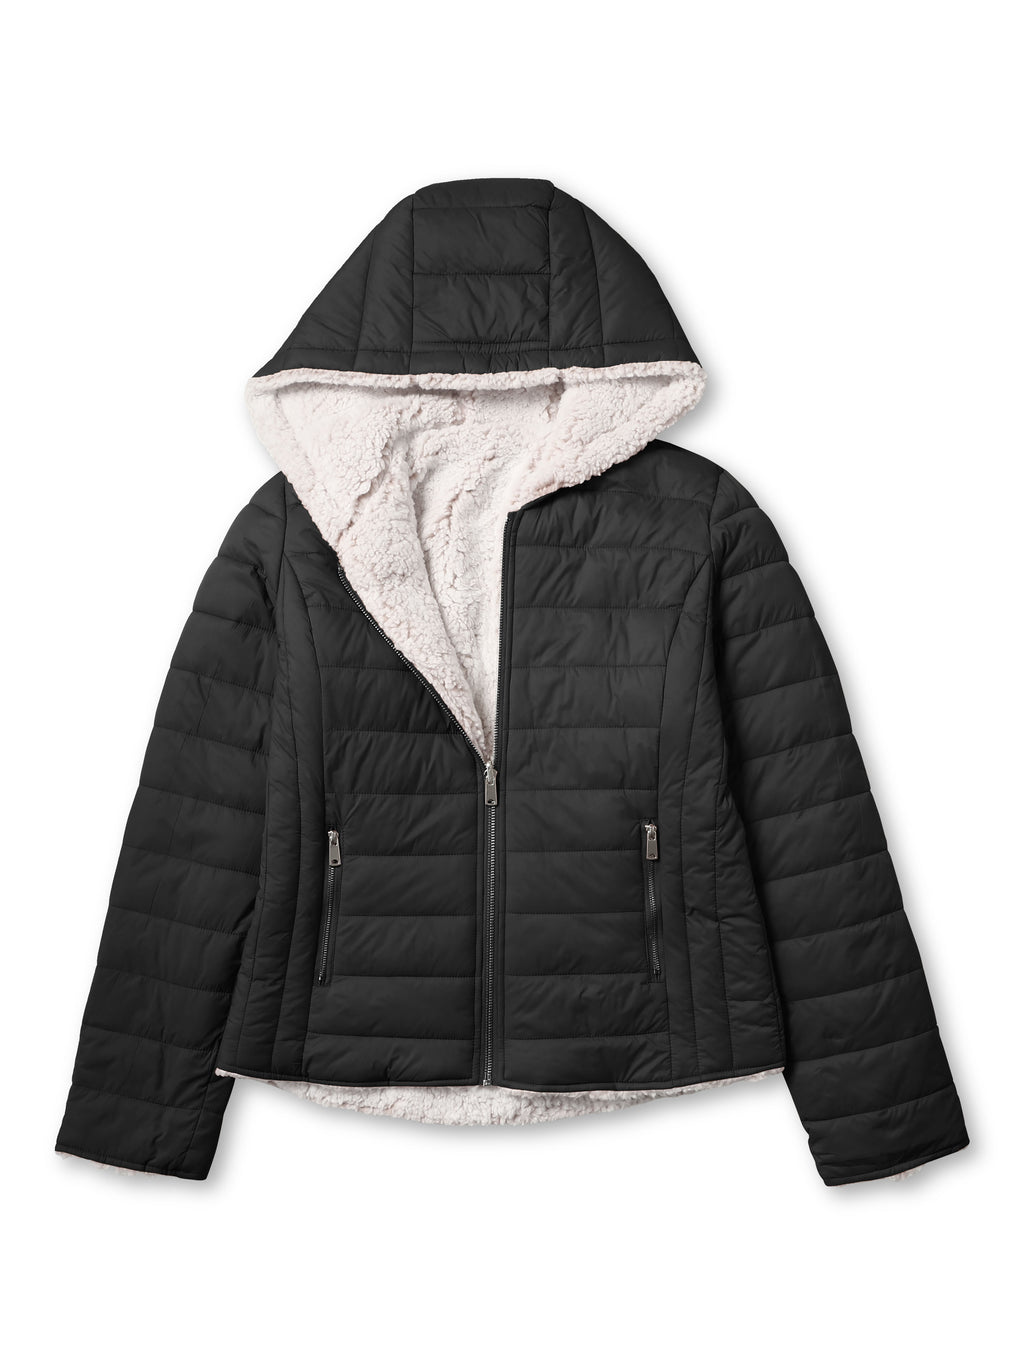 ladies_reversible_jacket_hood_fleece_white_puffer_with_fur_black_collection_water_resistance_off_white_synthetic_alternative_down_sherpa_lined_lightweight_military_parka_ski_coat_nuage_quilted_outerwear_warm_winter_fall_plush_padding_petite_mujer_chaqueta_outdoor_hike_performance_camping_commuter_short_midlength_Black